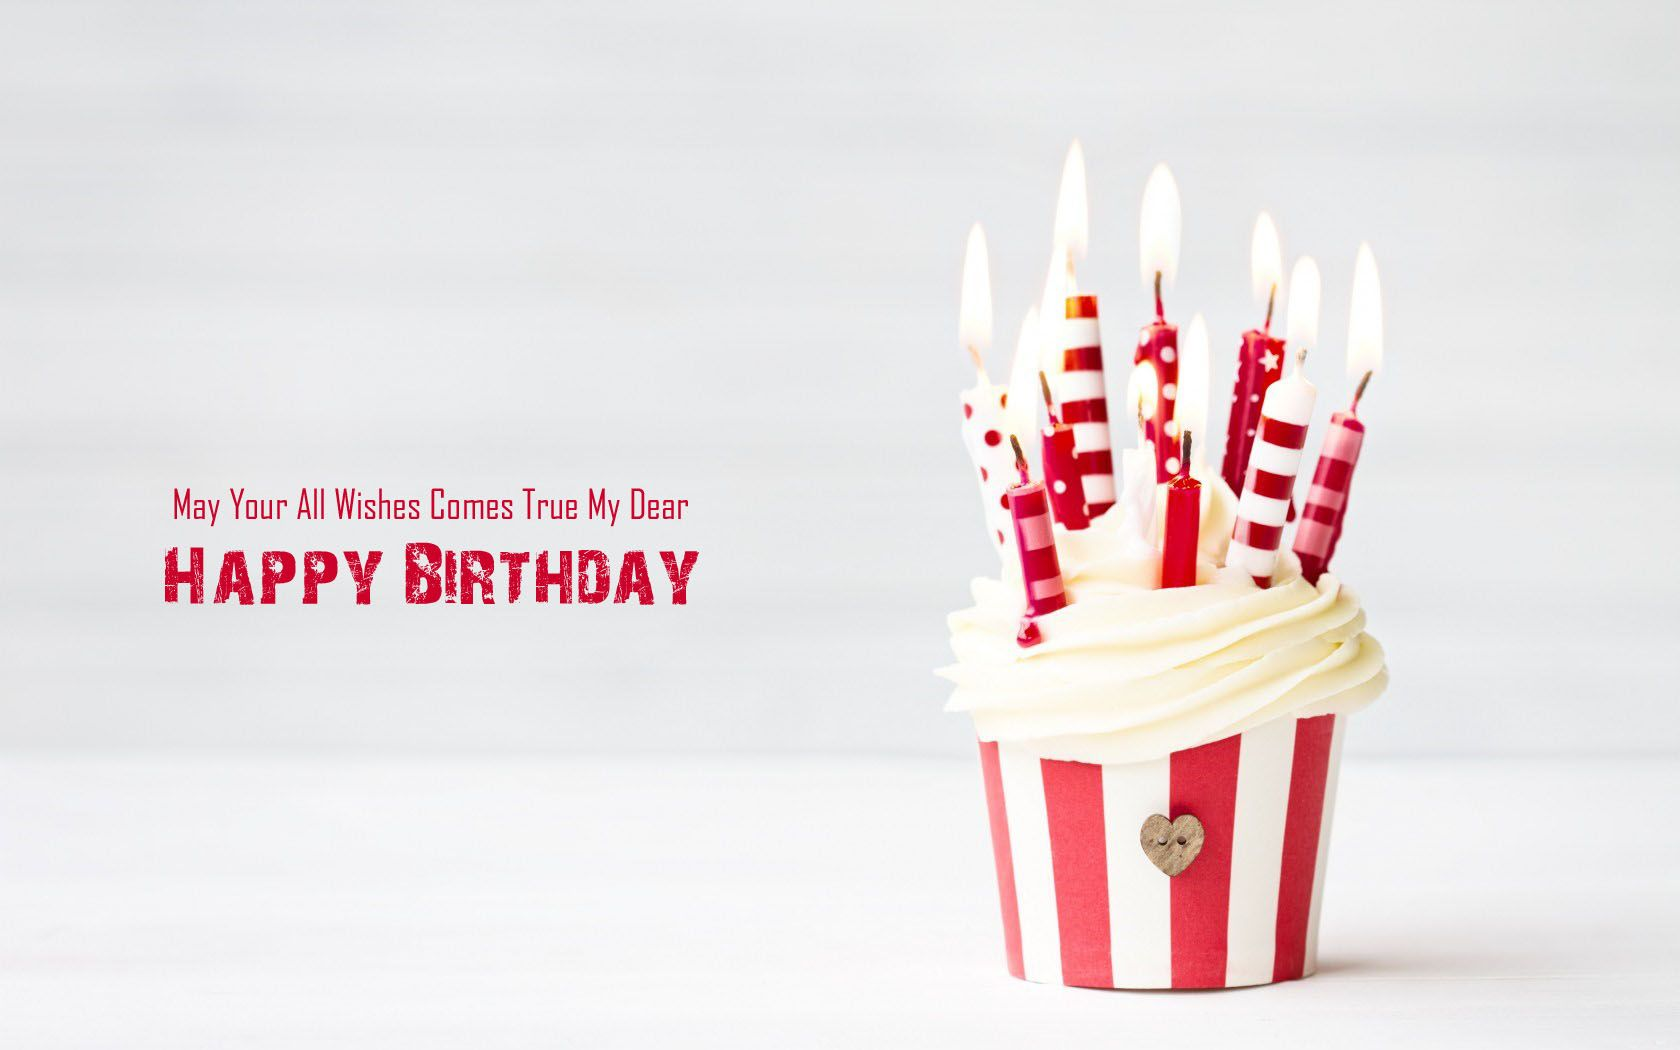 Happy Birthday Wishes Images Hd ~ Birthday wishes hd wallpaper happy greetings and